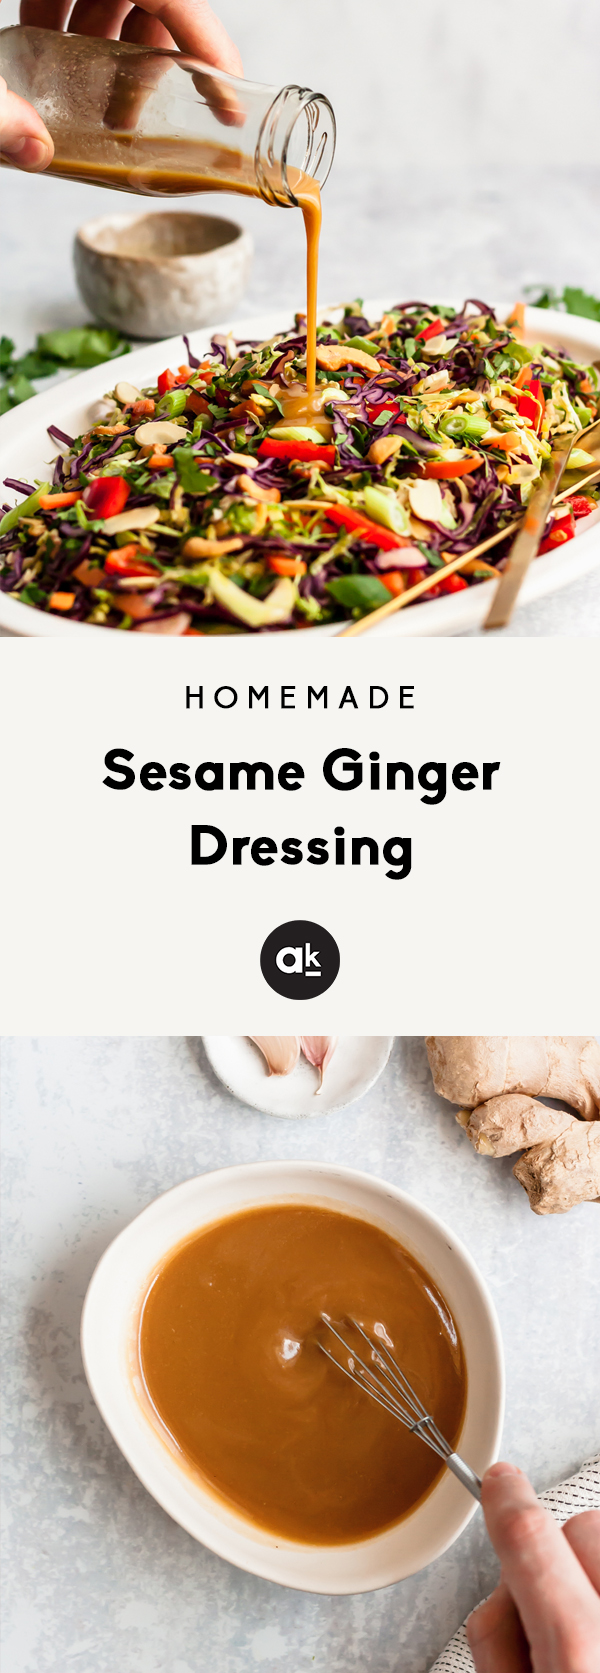 photo of sesame ginger dressing being poured on a salad